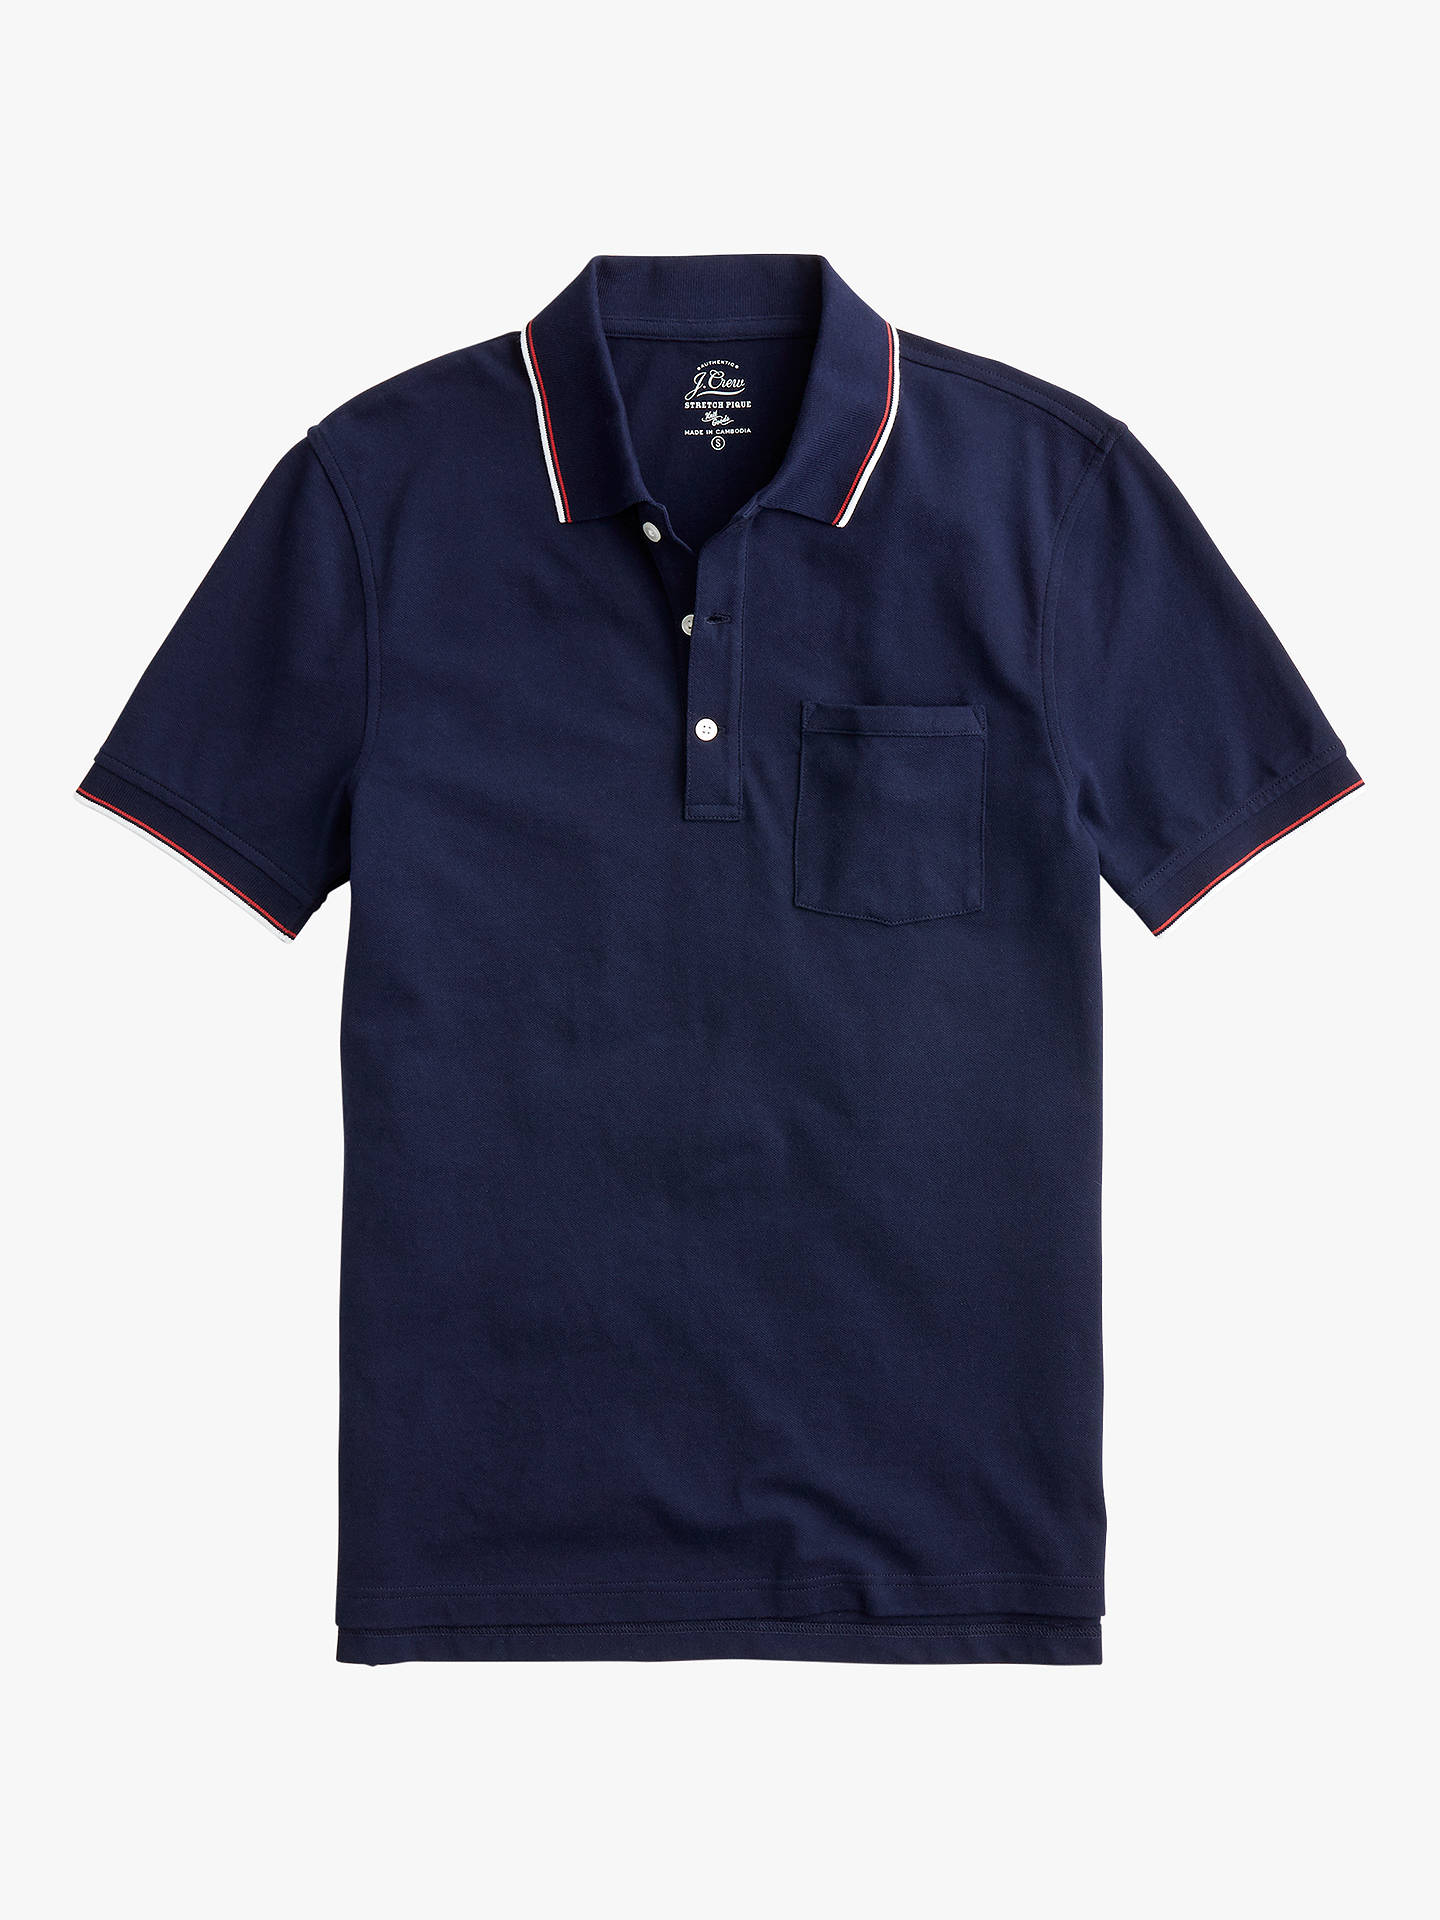 b7b3ae70 Buy J.Crew Stretch Pique Double Tipped Short Sleeve Polo Shirt, Navy Tipped,